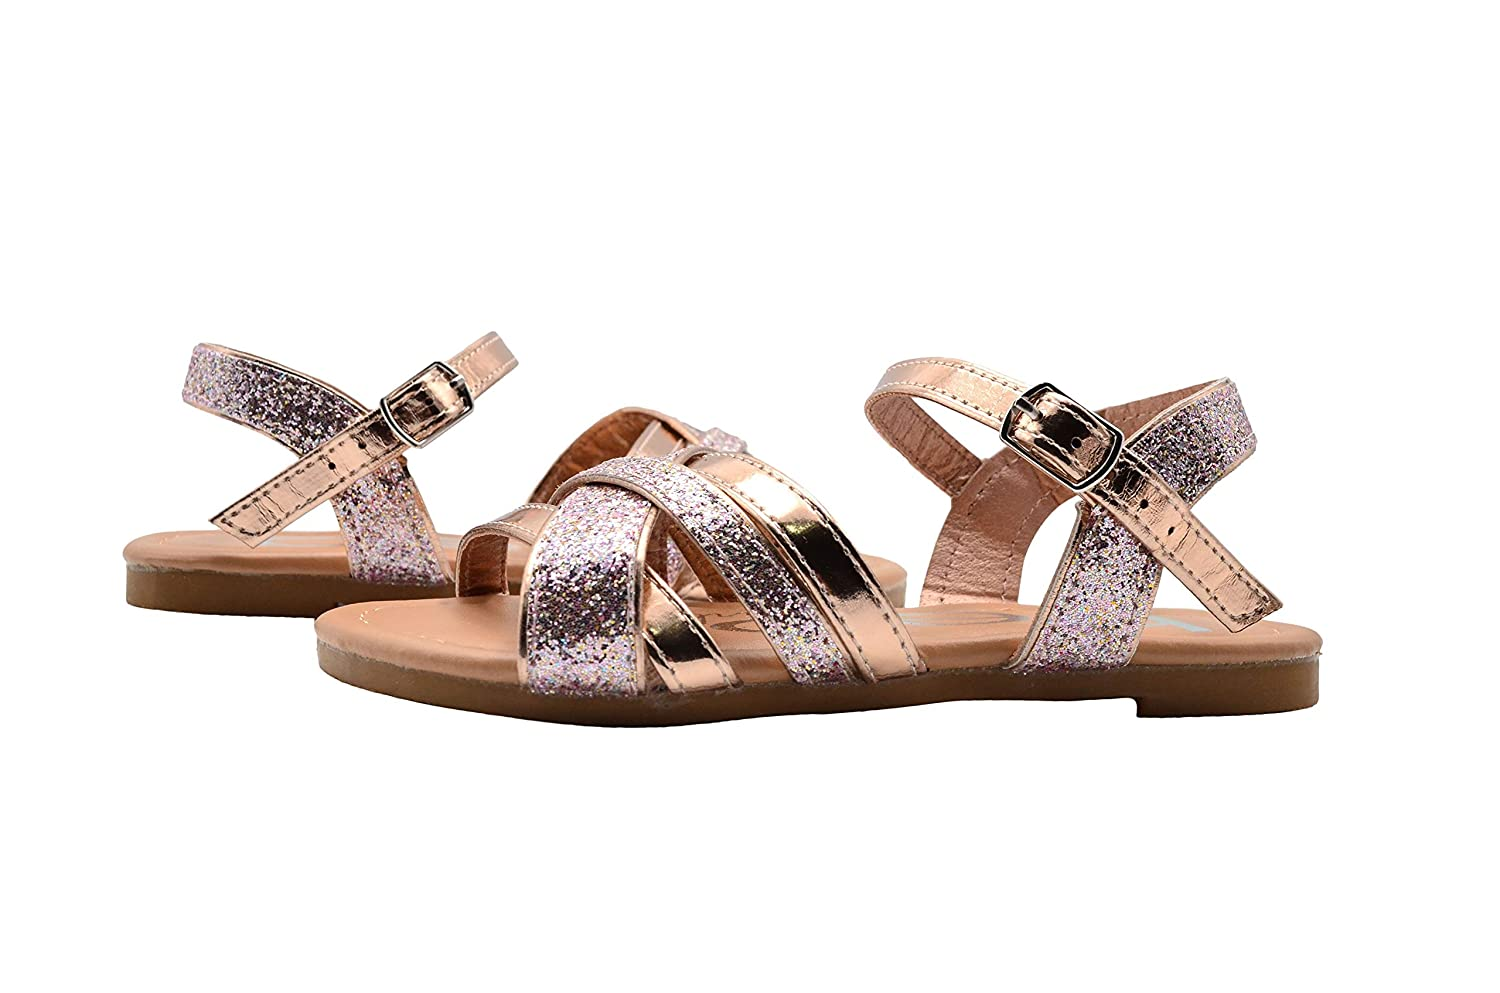 bebe Girls Fashion Sandals Multi Strap Summer Flats with Glitter